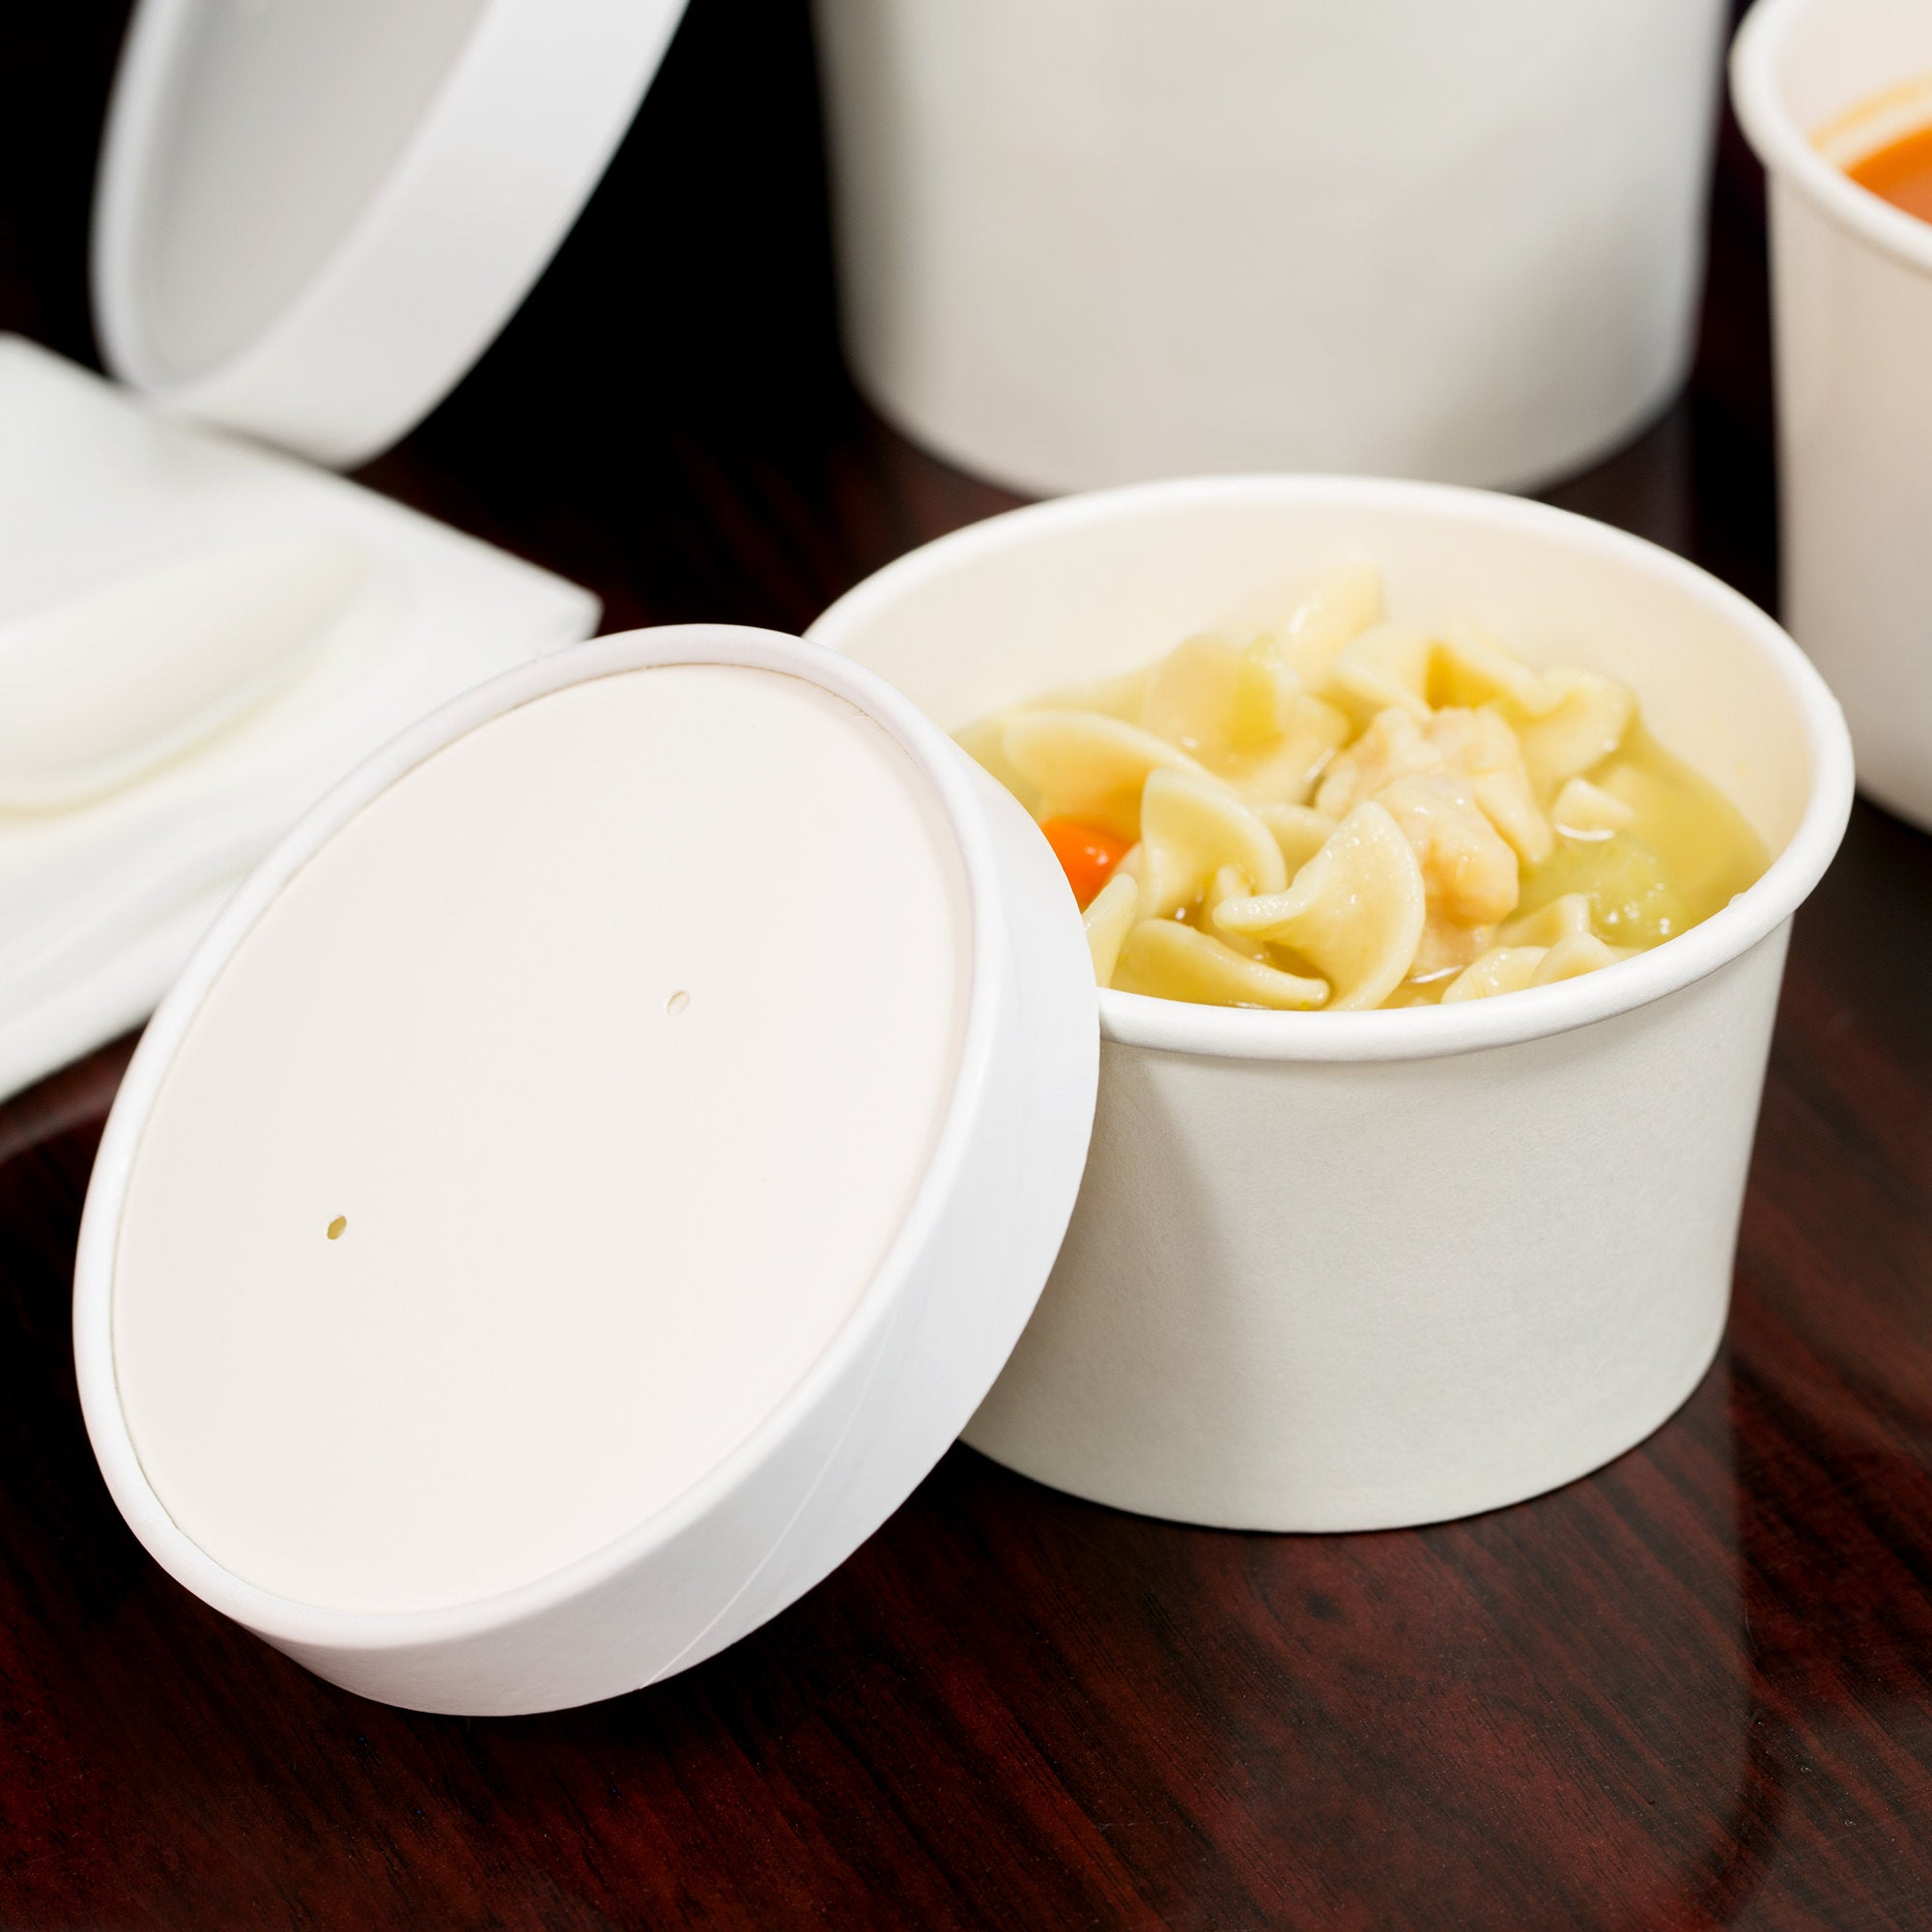 superior-equipment-supply - Dart Mfg - Paper Food Container Combo White 8 oz. With Lid  - 250/Case